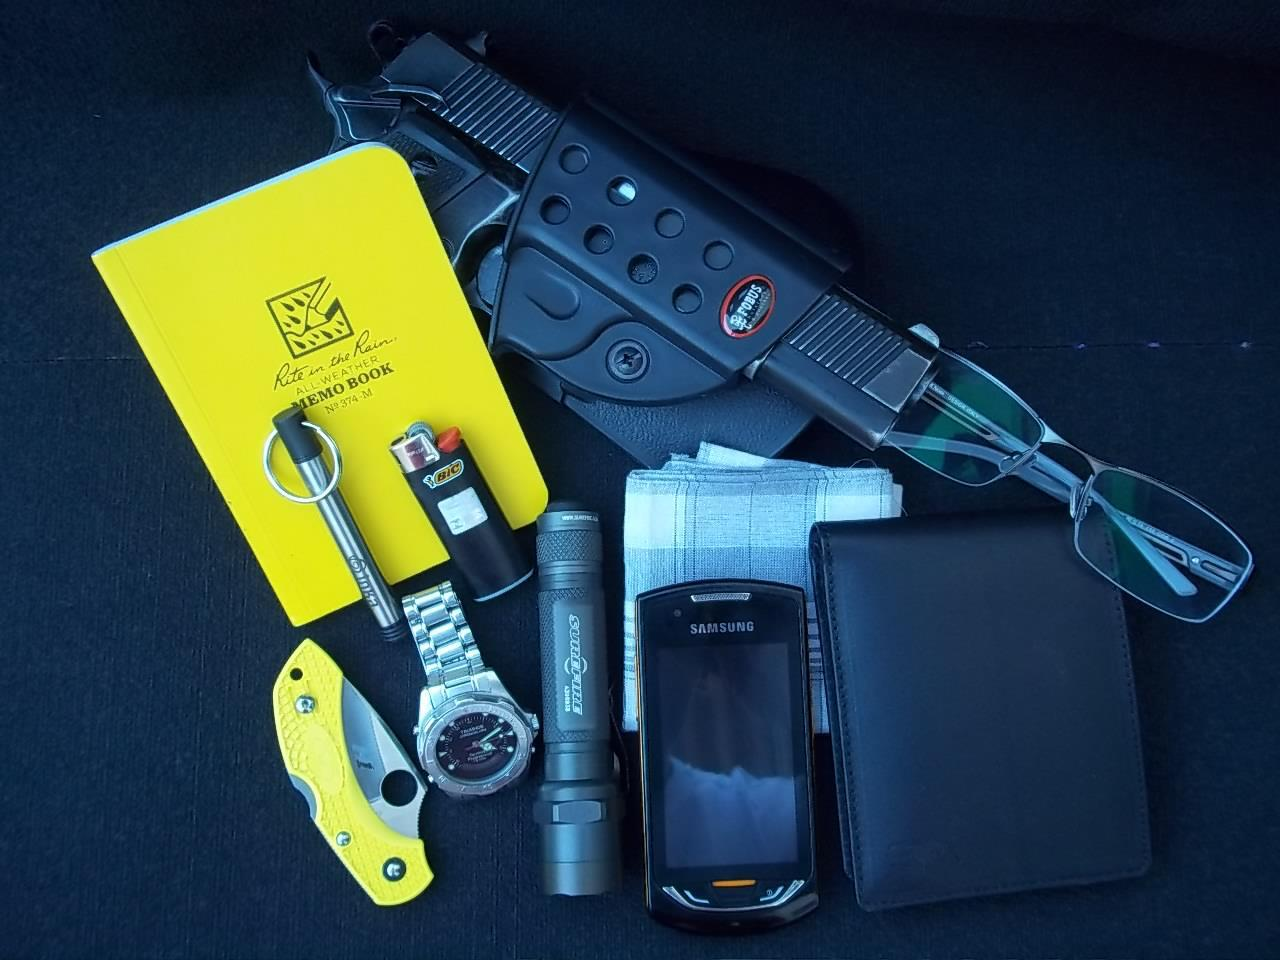 EDC By: Itamar D. Imbel MD5 .40 SW Fobus Holster - Purchase on Amazon Rite in the Rain Memo Book - Purchase on Amazon Inka Pen - Purchase on Amazon BIC Lighter - Purchase on Amazon Spyderco DragonFly 2 Salt - Purchase on Amazon Technos Skydiver Surefire E2E + Veleno Designs - Purchase on Amazon Handkerchief - Purchase on Amazon Samsung Monte - Purchase on Amazon Ralph Lauren Wallet - Purchase on Amazon Glasses